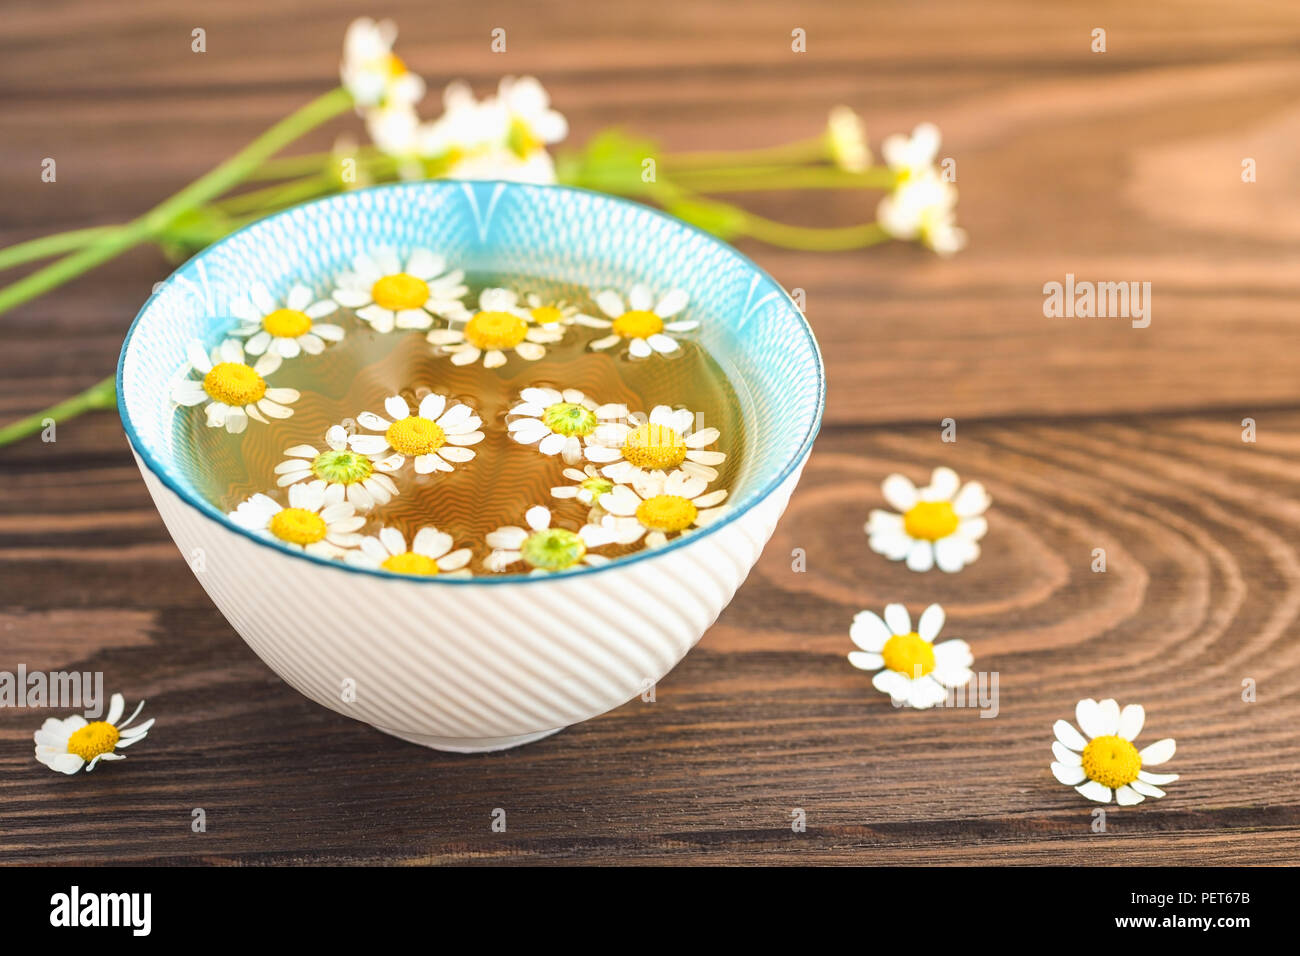 Organic Daisy Tea With Fresh Flowers On A Wooden Table The Concept